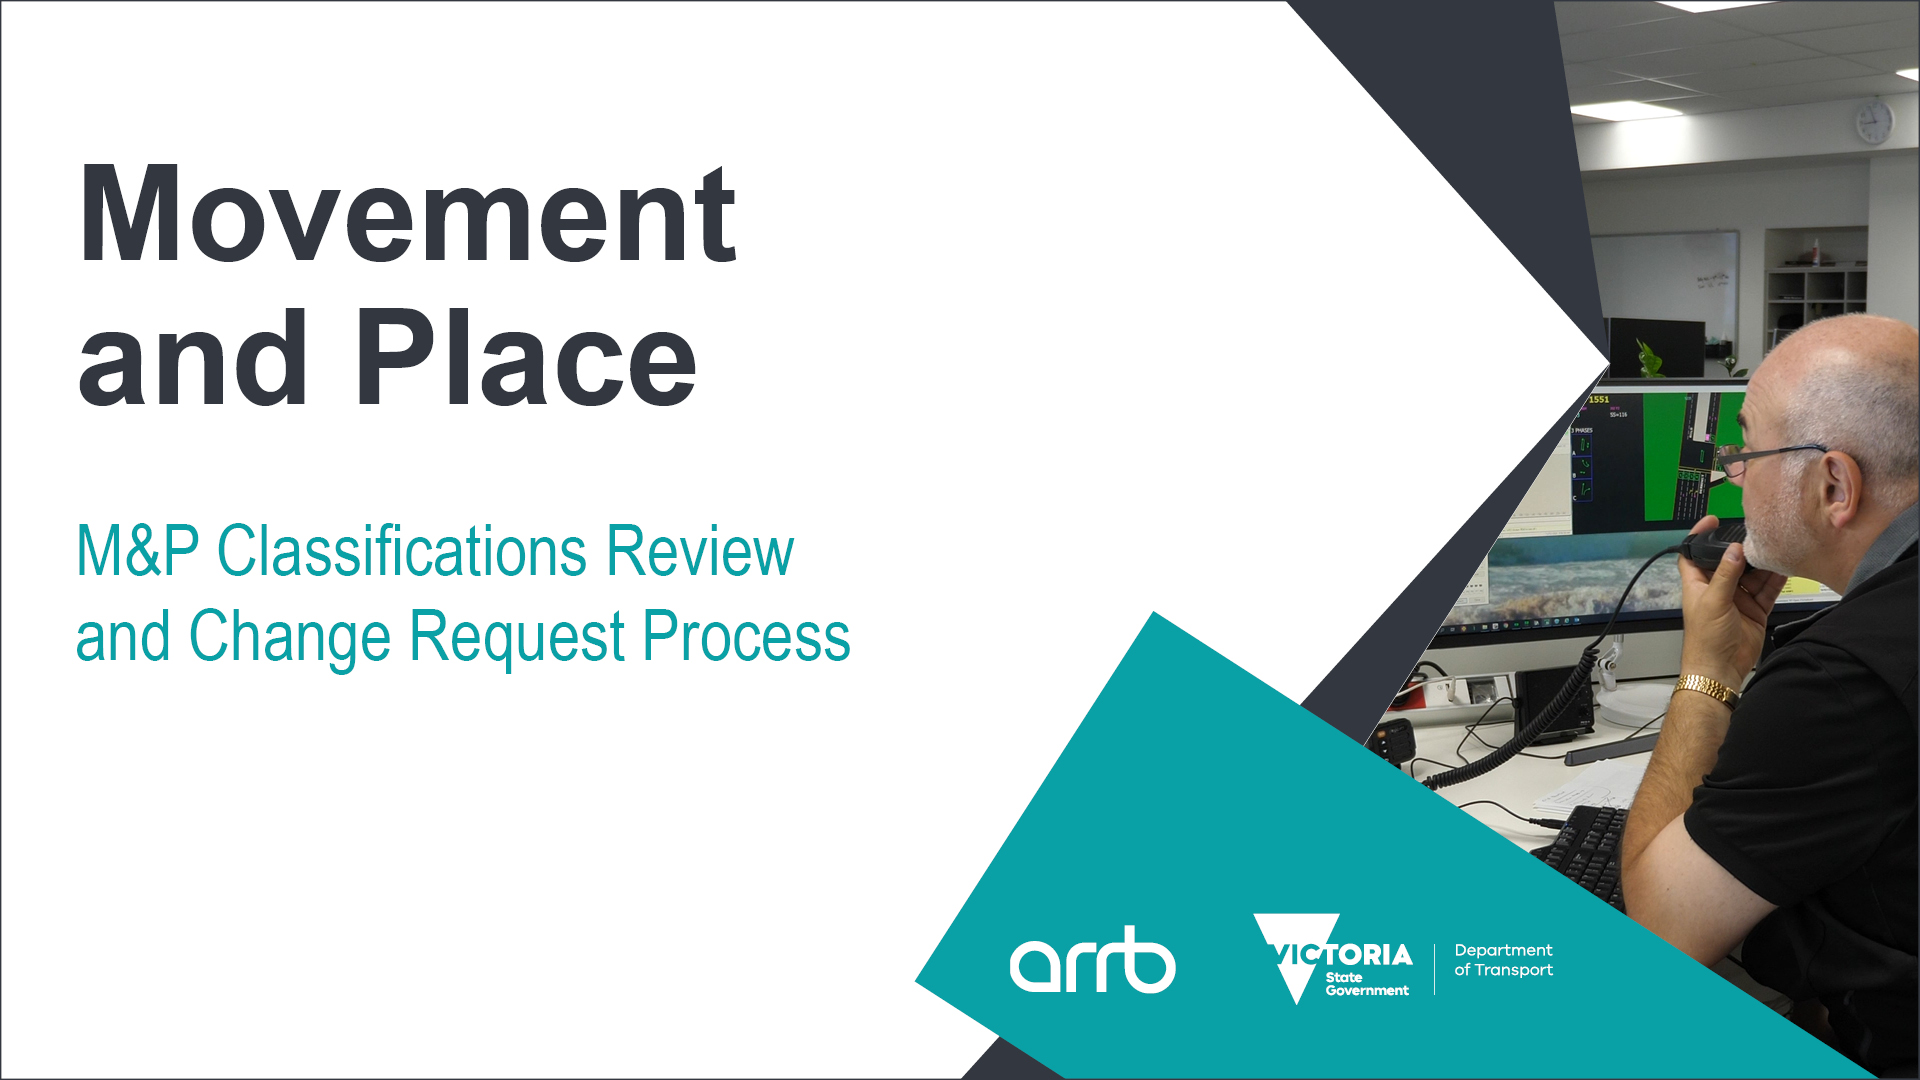 DoT Online Movement and Place - M&P Classifications Review and Change Request Process for local government - May